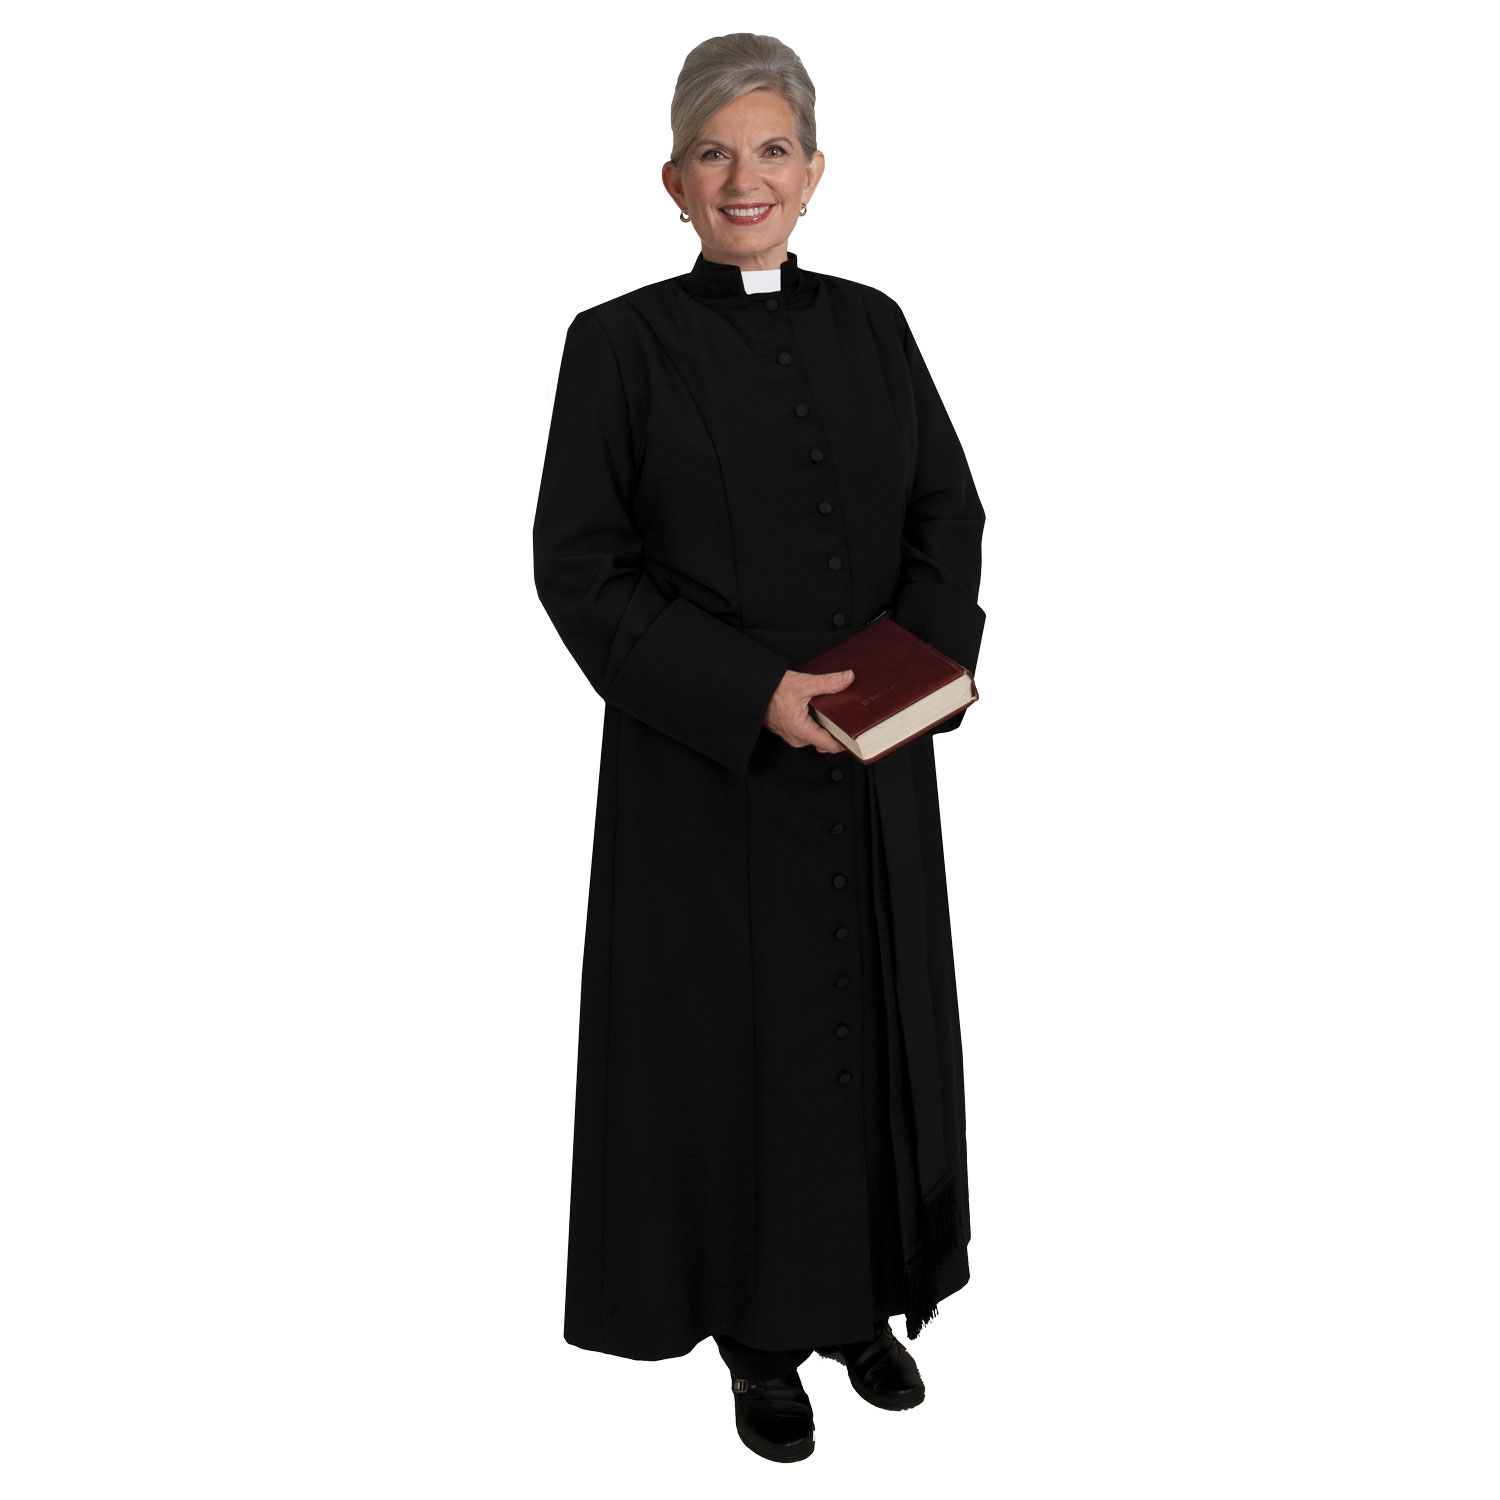 Women's Clergy Cassock | Black